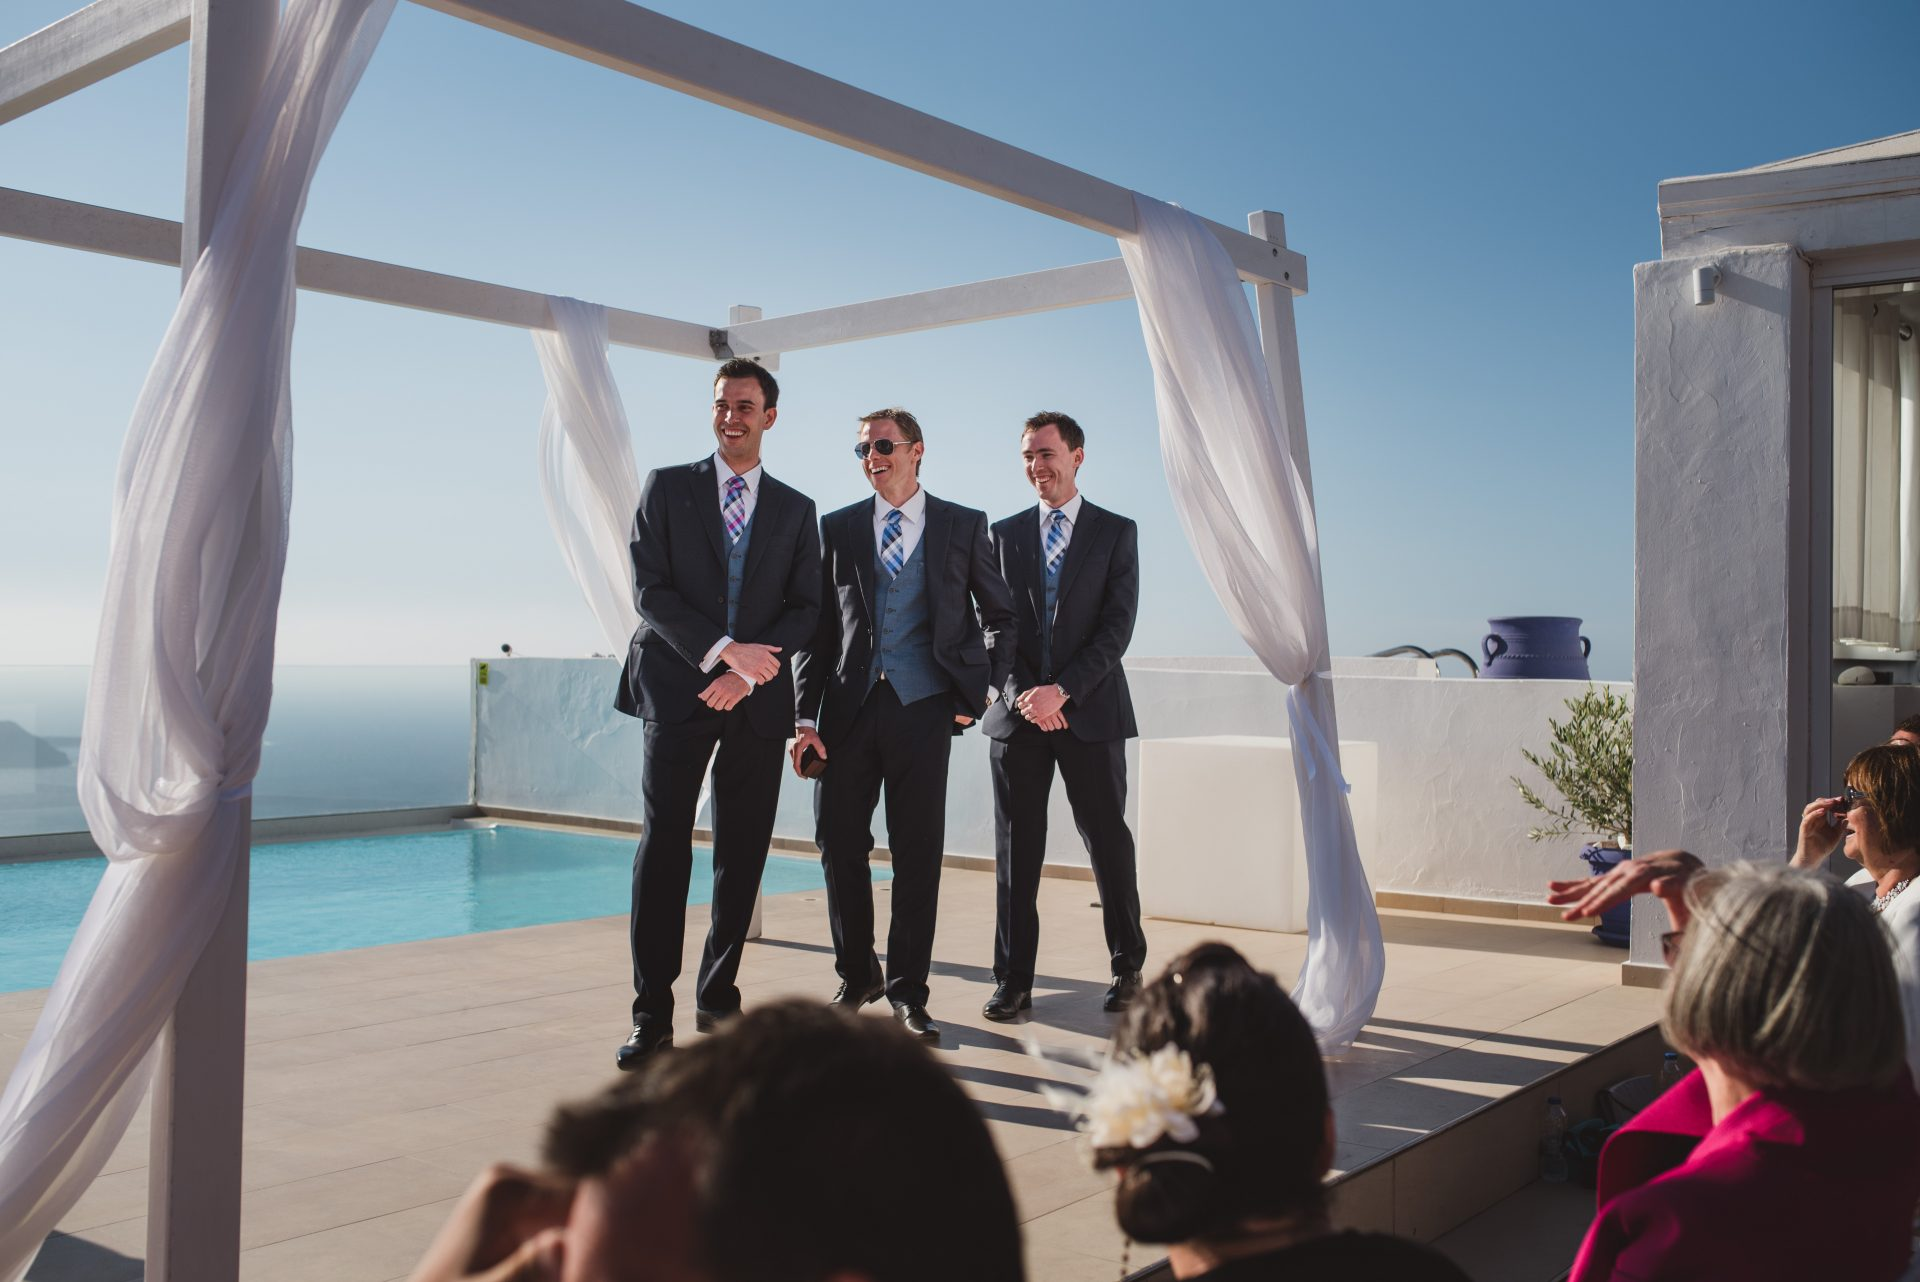 Santorini Wedding Photographs - Stewart Girvan Photography